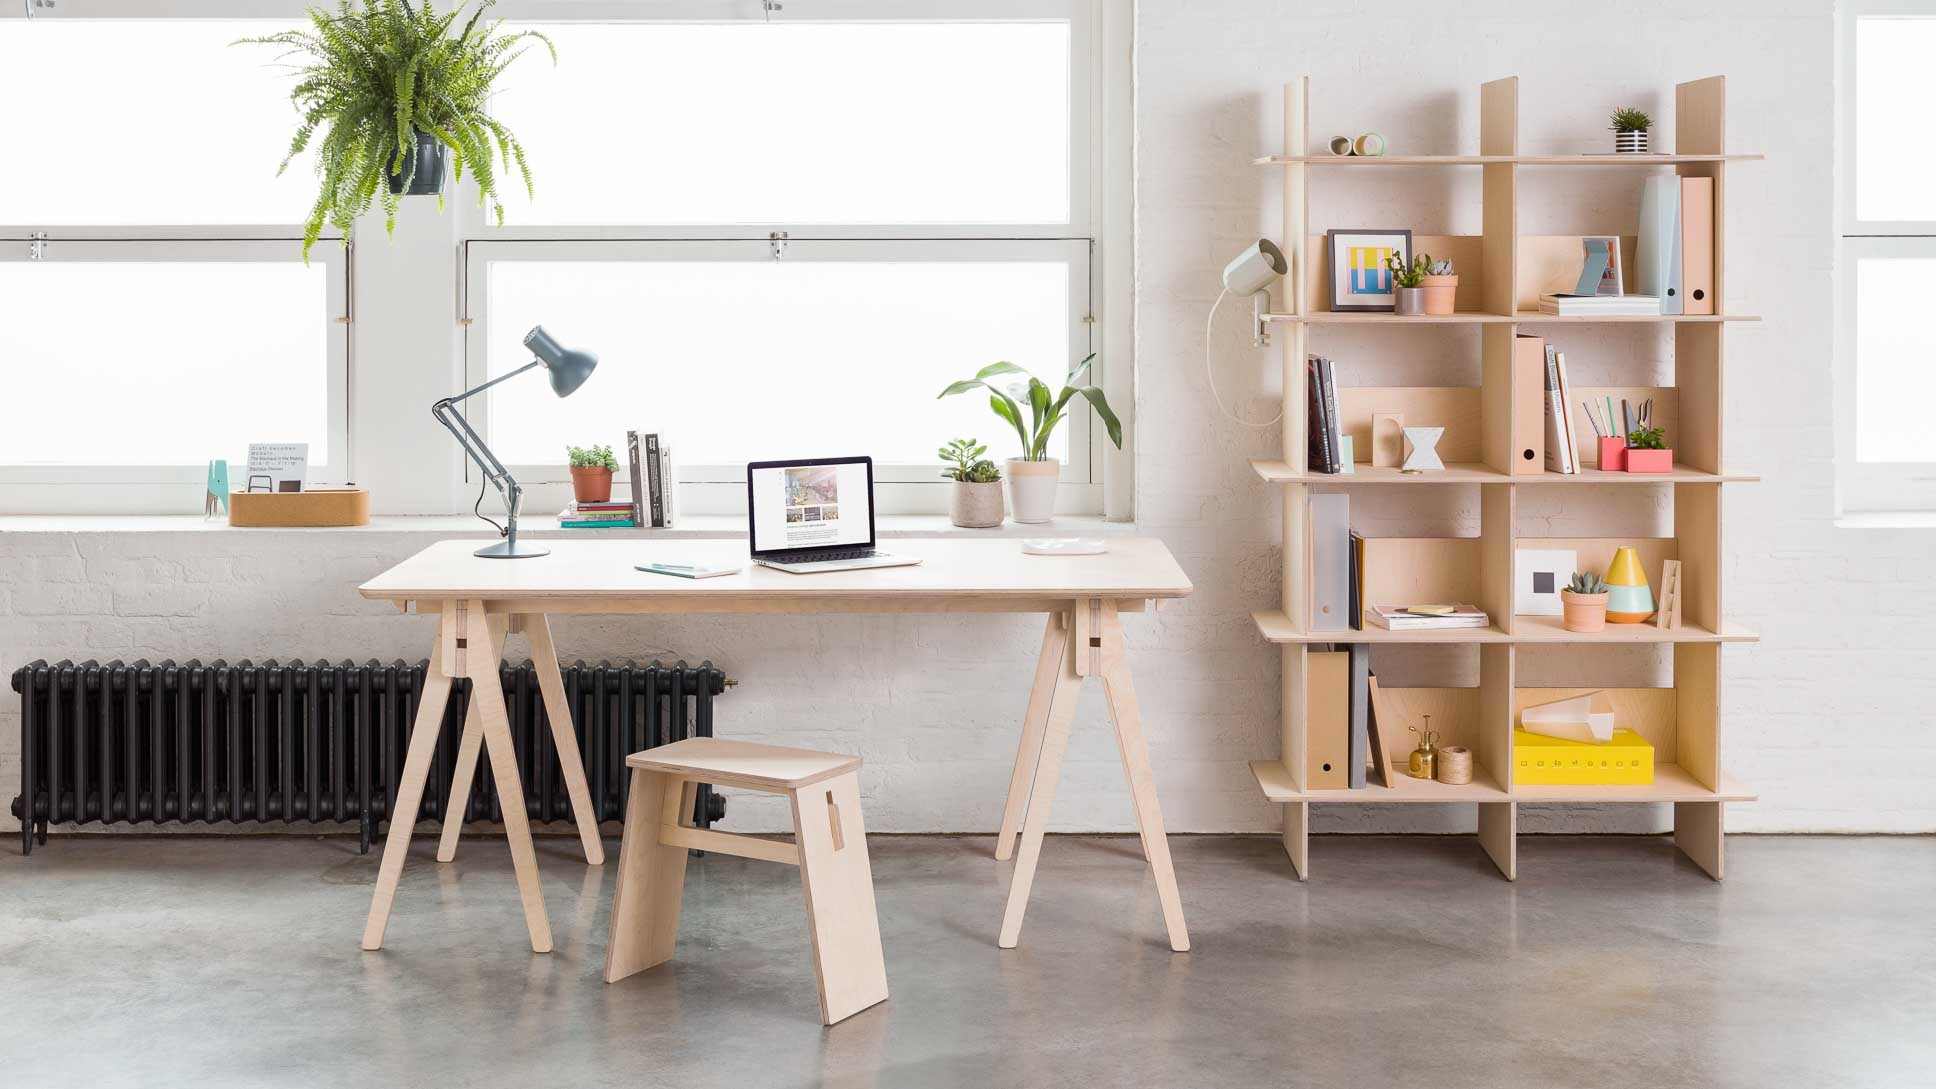 opendesk_furniture_johann-stool_product-page_gallery-image-Shot4-2244_v01_edit.default